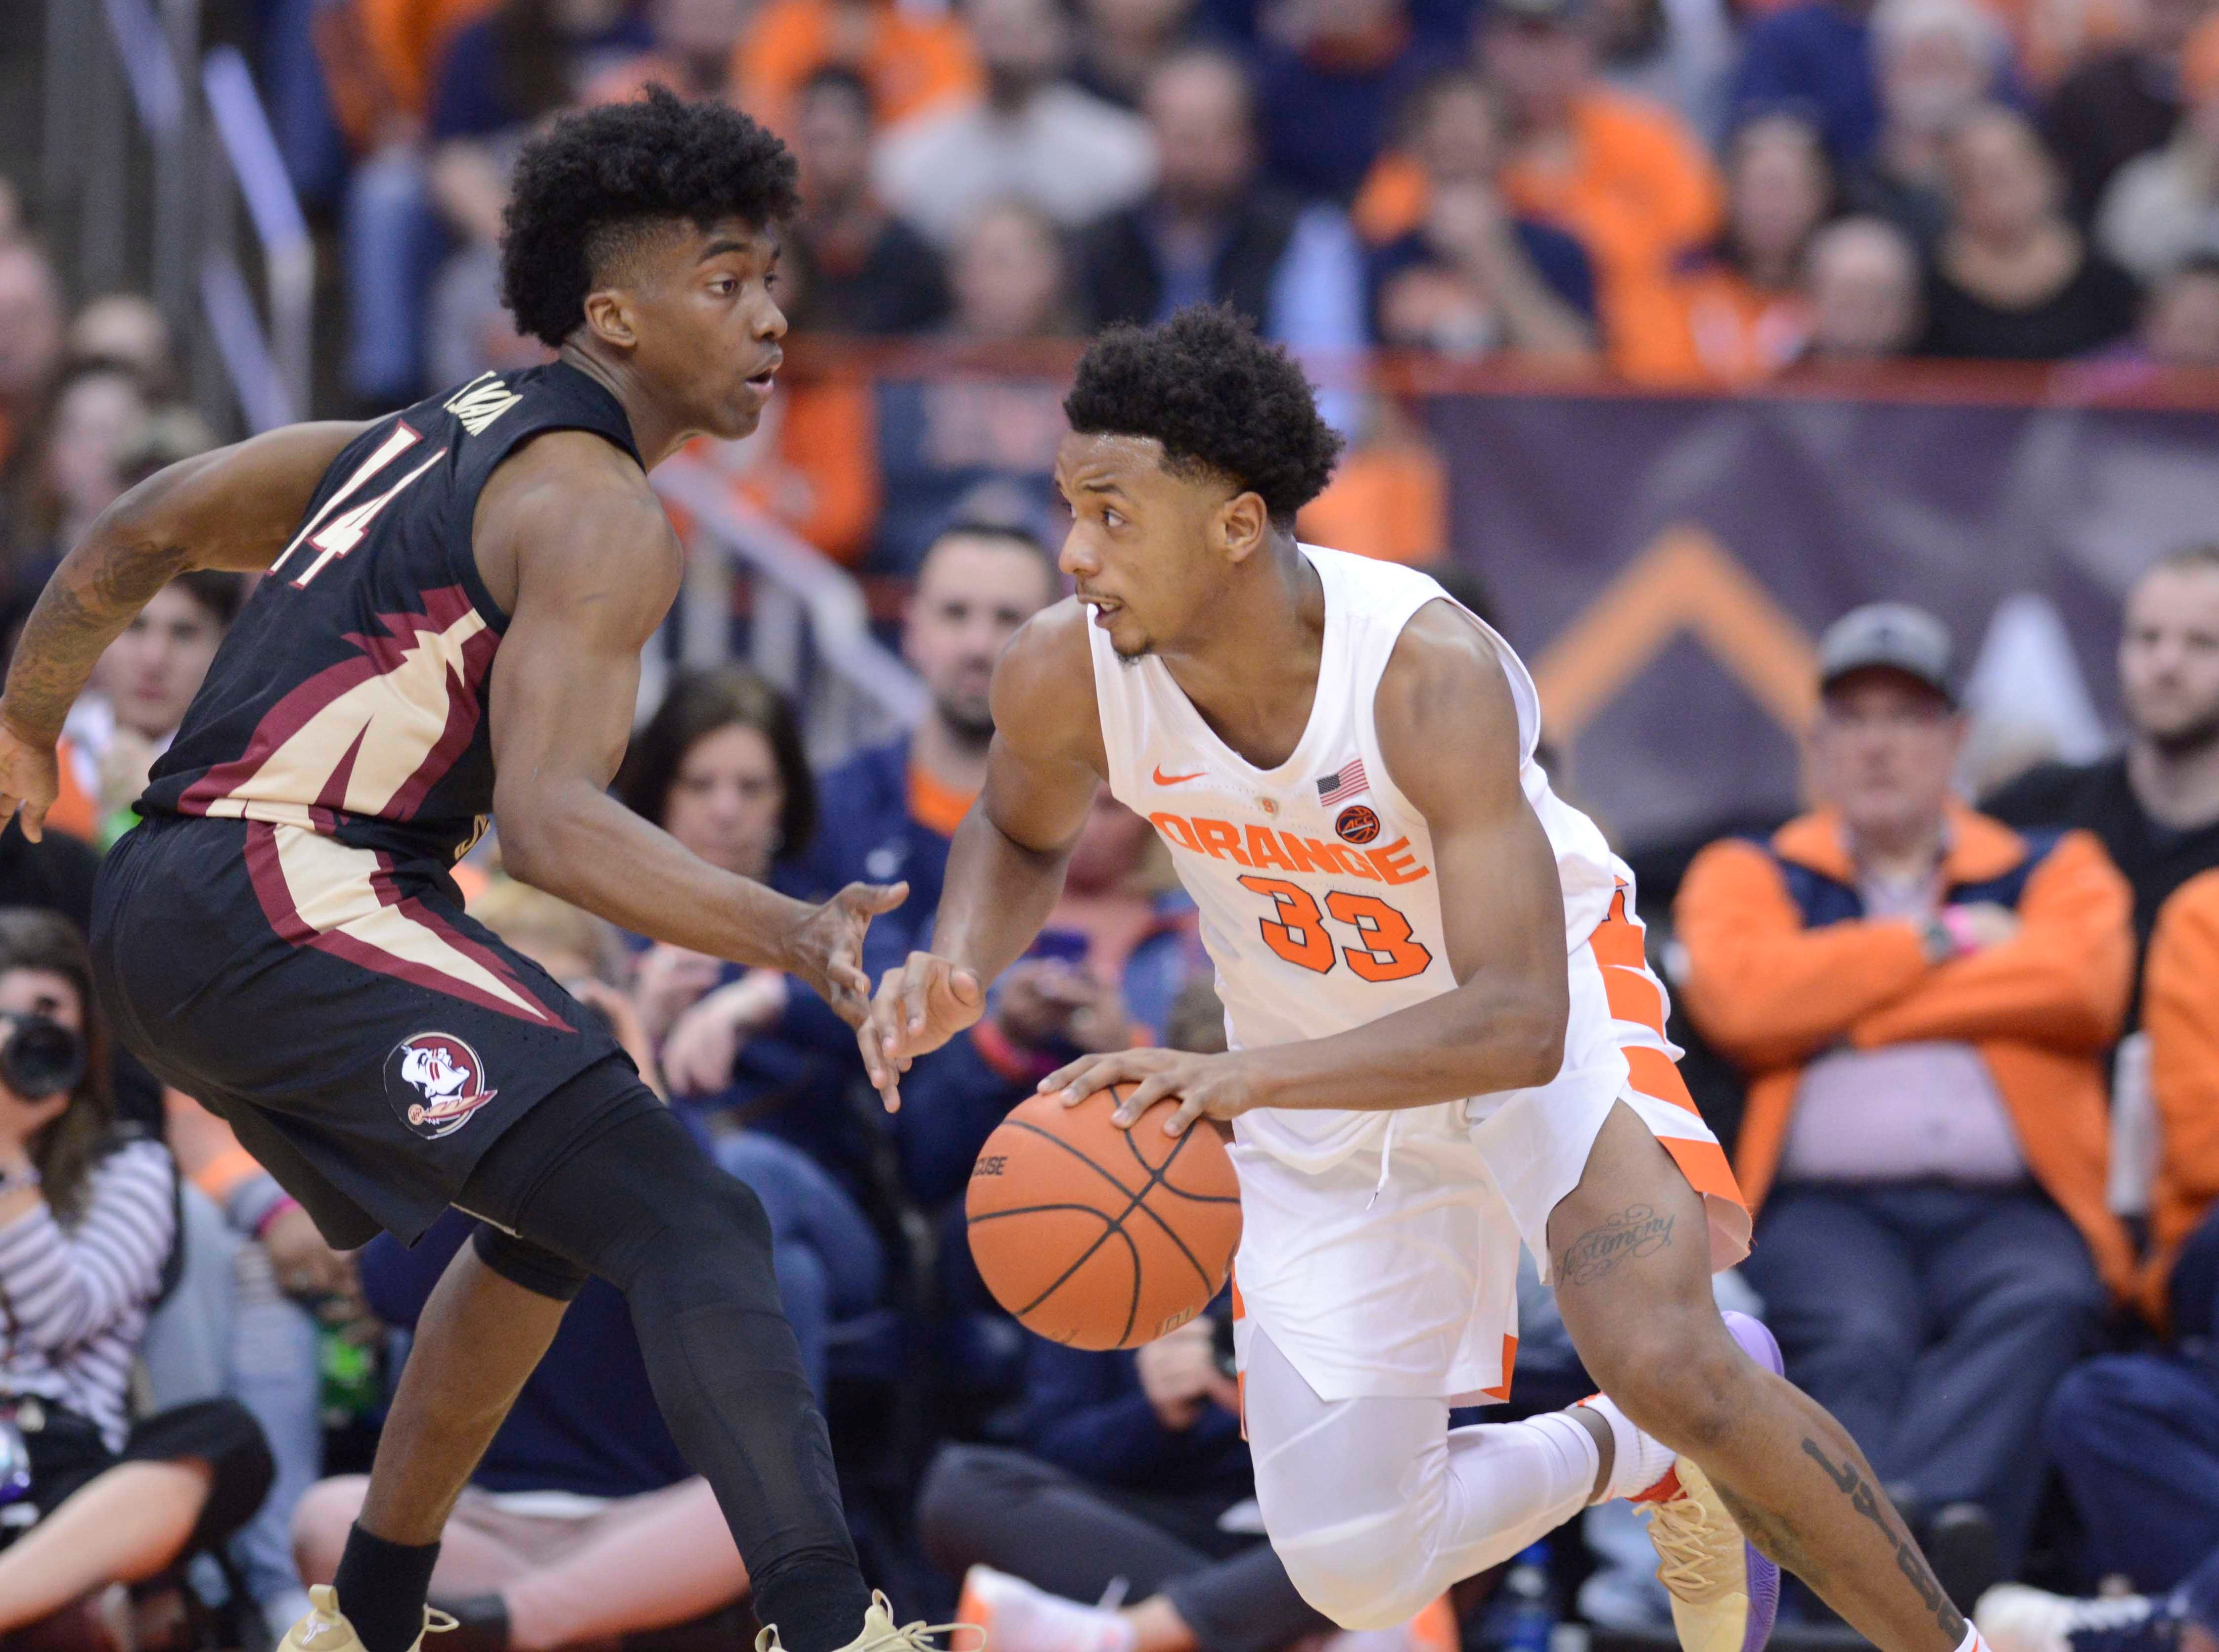 Feb 5, 2019; Syracuse, NY, USA; Syracuse Orange forward Elijah Hughes (33) works to drive the ball past Florida State Seminoles guard Terance Mann (14) in the first half at the Carrier Dome. Mandatory Credit: Mark Konezny-USA TODAY Sports